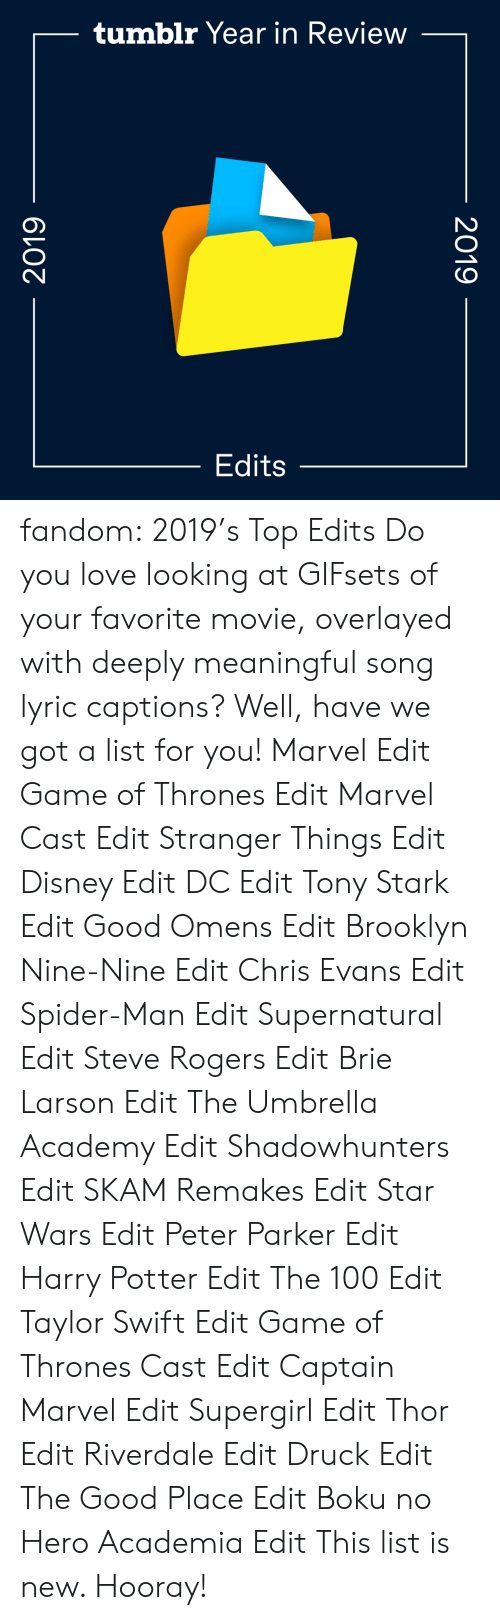 Search: tumblr Year in Review  Edits  2019  2019 fandom:  2019's Top Edits  Do you love looking at GIFsets of your favorite movie, overlayed with deeply meaningful song lyric captions? Well, have we got a list for you!  Marvel Edit  Game of Thrones Edit  Marvel Cast Edit  Stranger Things Edit  Disney Edit  DC Edit  Tony Stark Edit  Good Omens Edit  Brooklyn Nine-Nine Edit  Chris Evans Edit  Spider-Man Edit  Supernatural Edit  Steve Rogers Edit  Brie Larson Edit  The Umbrella Academy Edit  Shadowhunters Edit  SKAM Remakes Edit  Star Wars Edit  Peter Parker Edit  Harry Potter Edit  The 100 Edit  Taylor Swift Edit  Game of Thrones Cast Edit  Captain Marvel Edit  Supergirl Edit  Thor Edit  Riverdale Edit  Druck Edit  The Good Place Edit  Boku no Hero Academia Edit This list is new. Hooray!